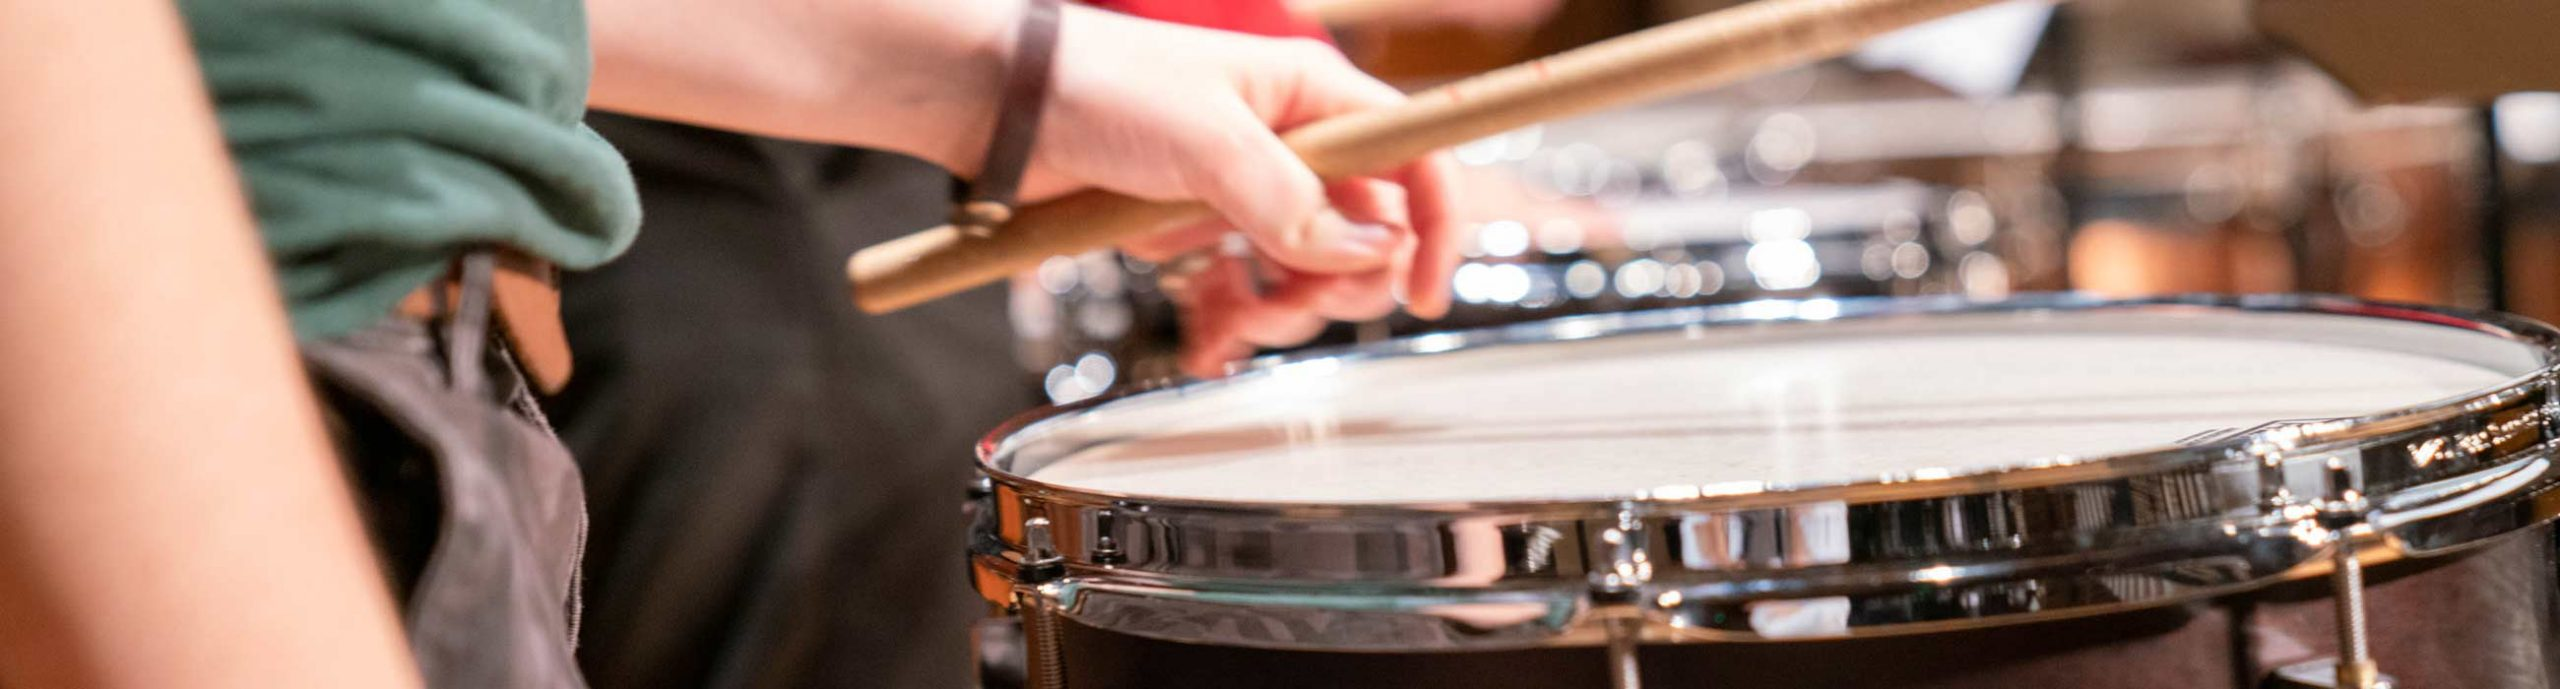 Close up of hand holding mallet above drum